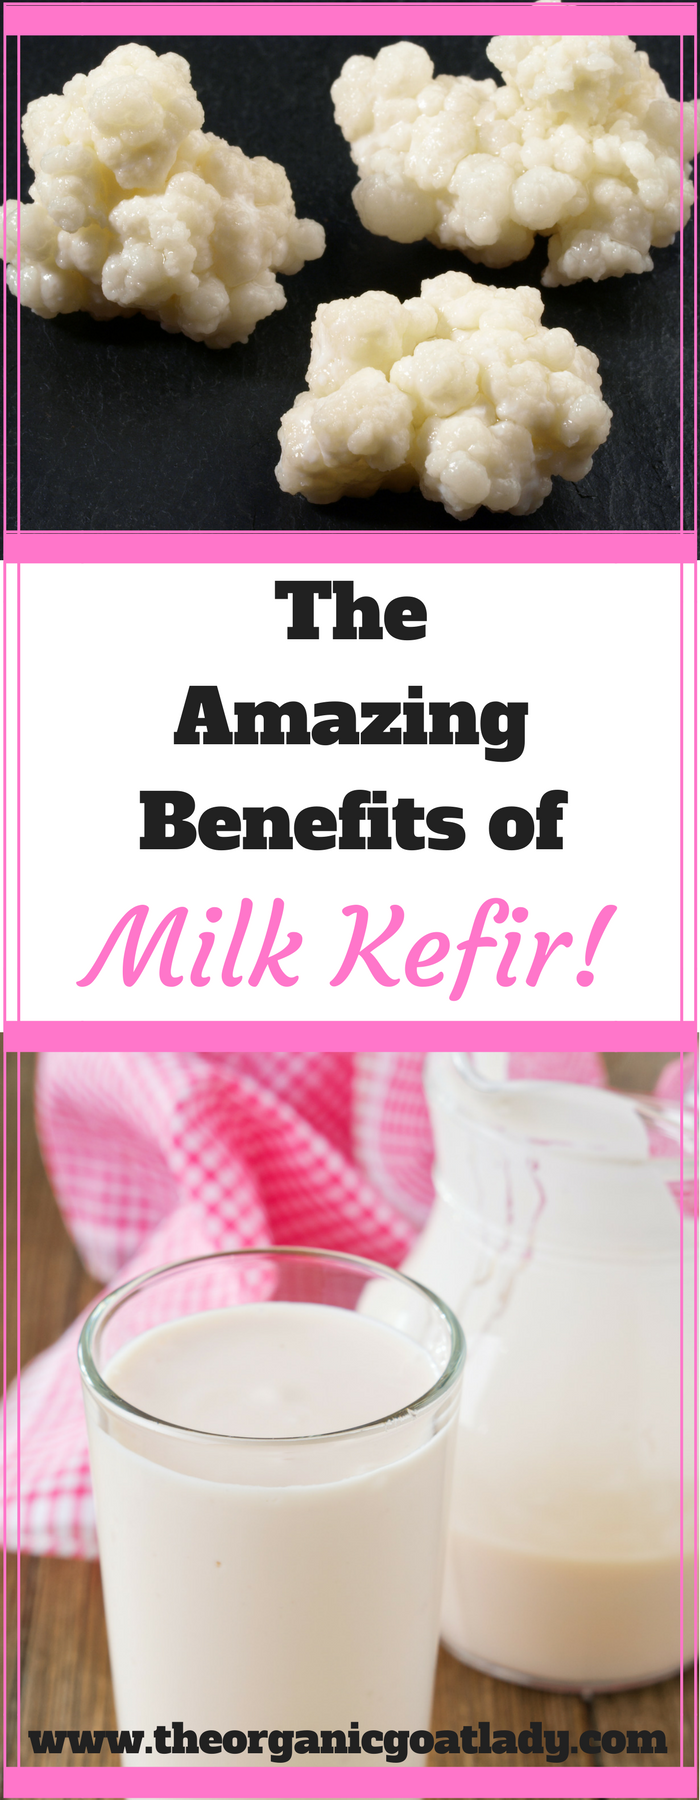 The Amazing Benefits of Milk Kefir!